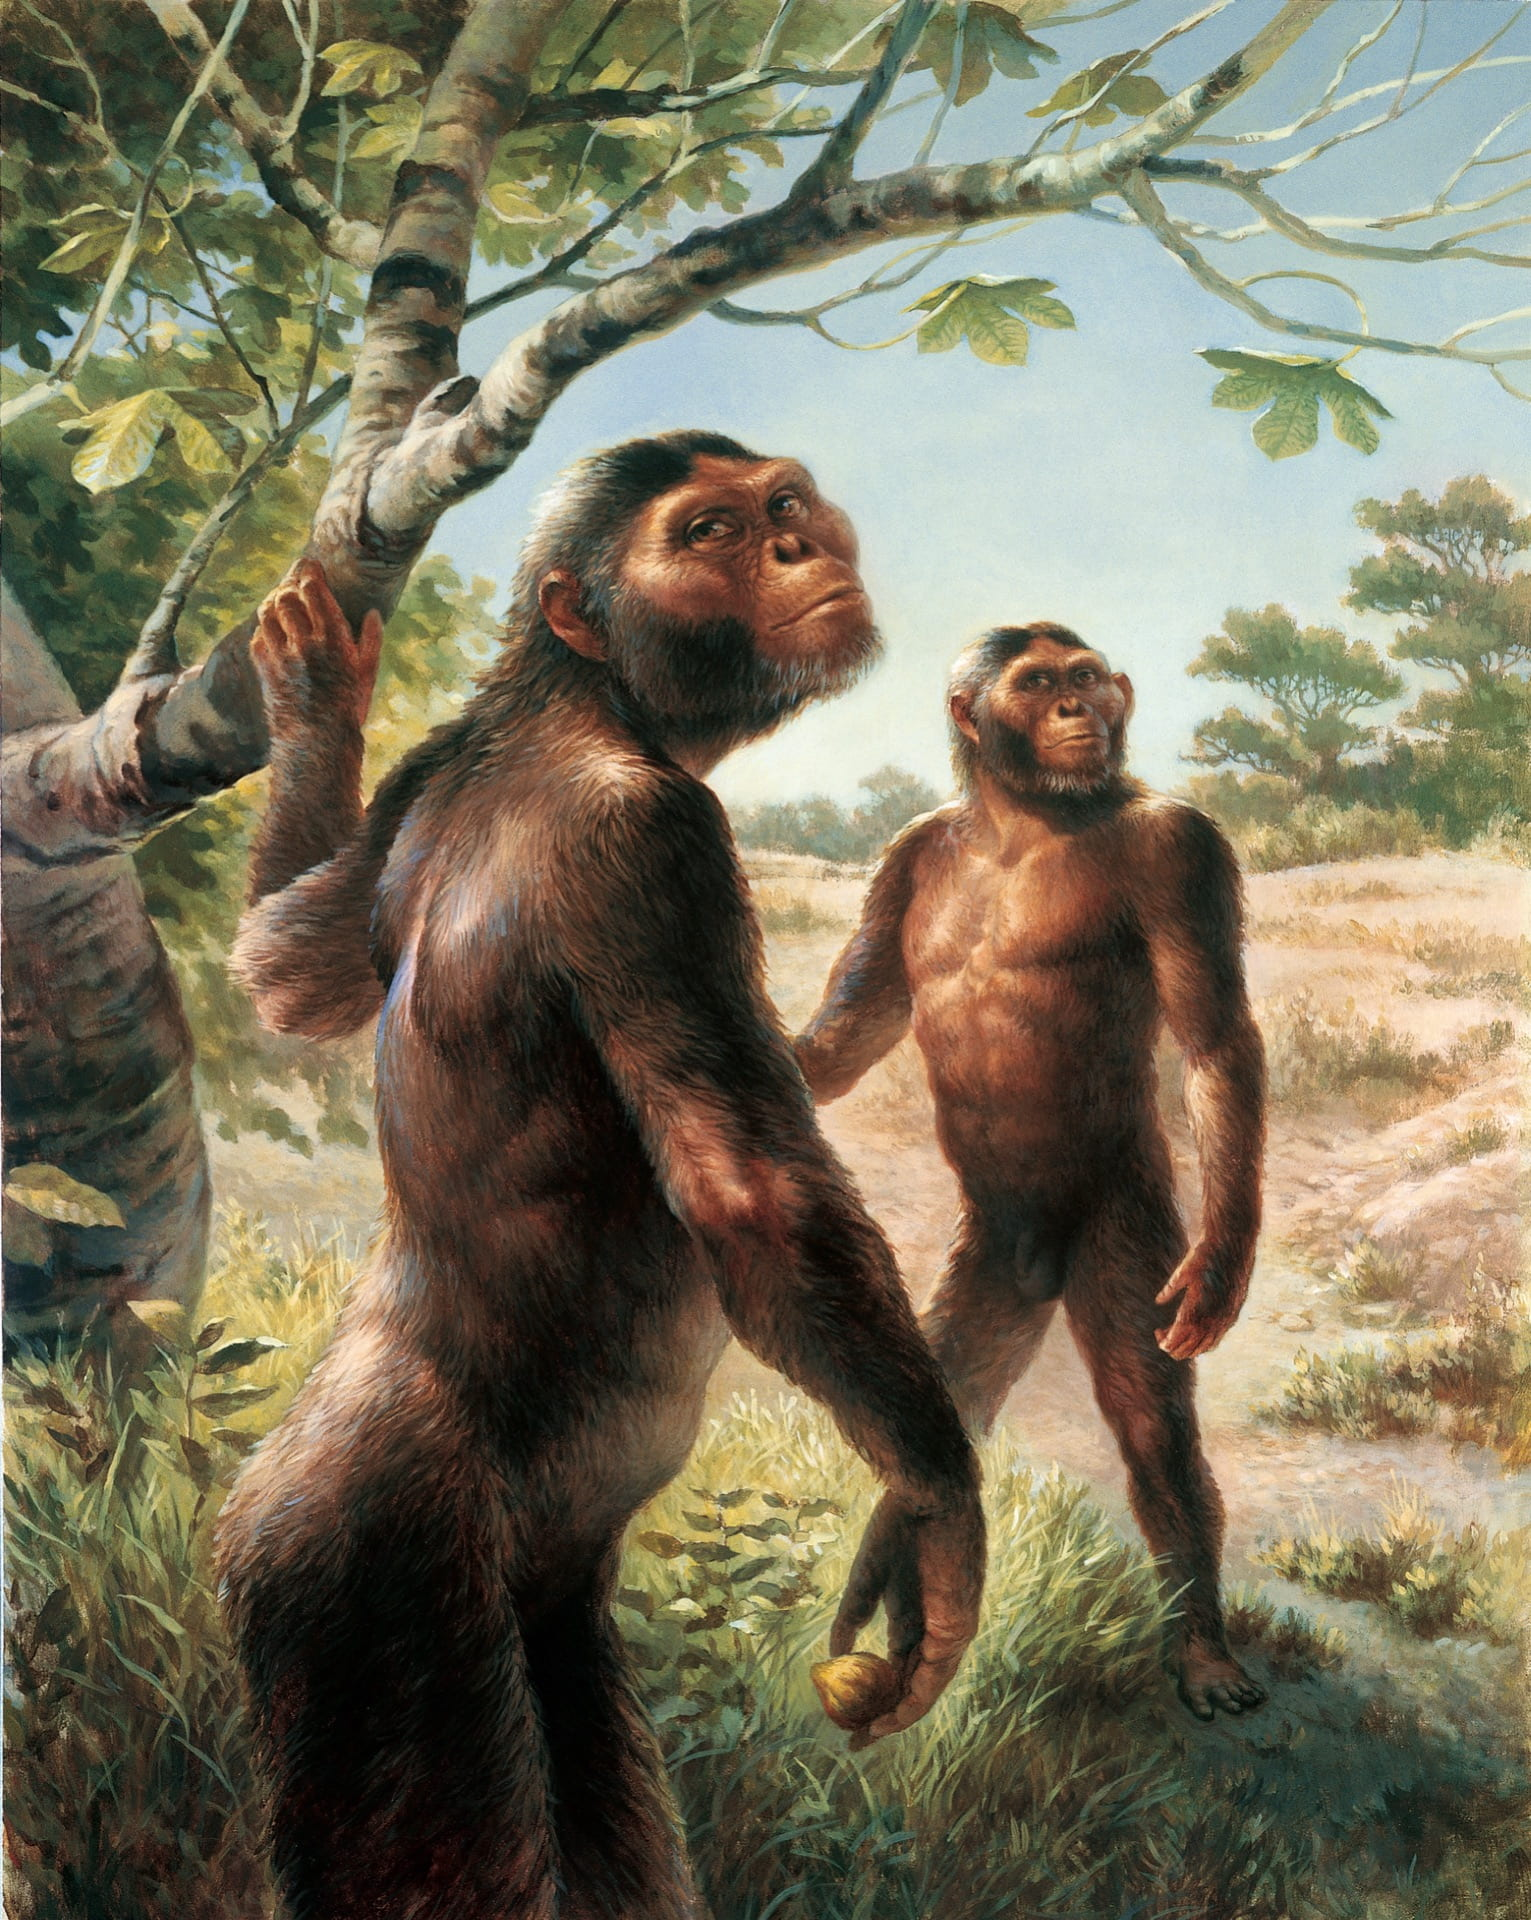 An artist's interpretation of the human ancestor from the species Australopithecus afarensis. This species looks similar to modern chimpanzees however they walk upright on two legs instead of on all four limbs like chimpanzees.